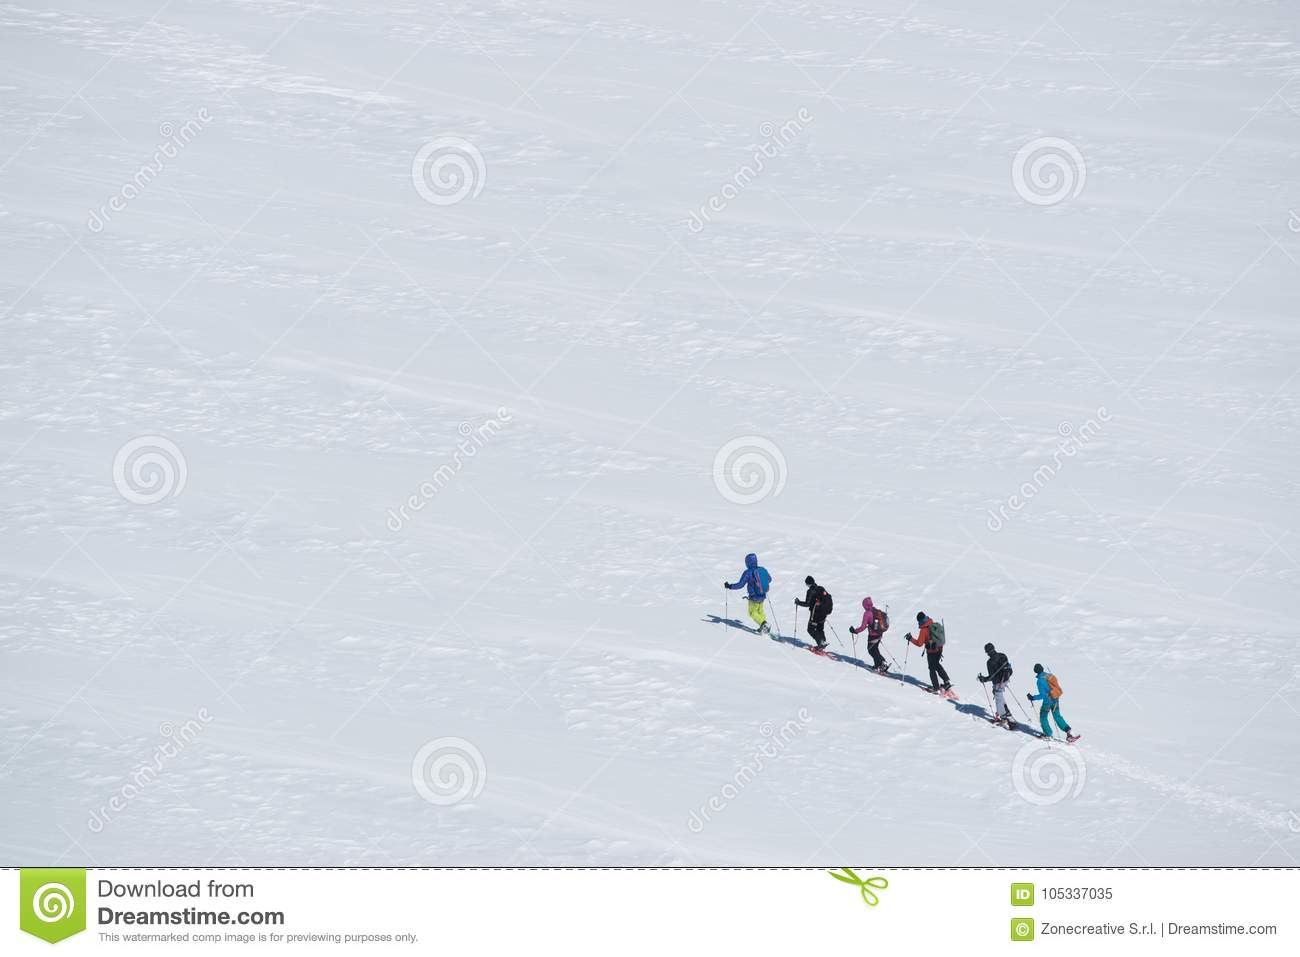 Group of people exploring glacier or snowy land walking with snowshoes. Europe Alps Mont Blanc massif mount. Winter